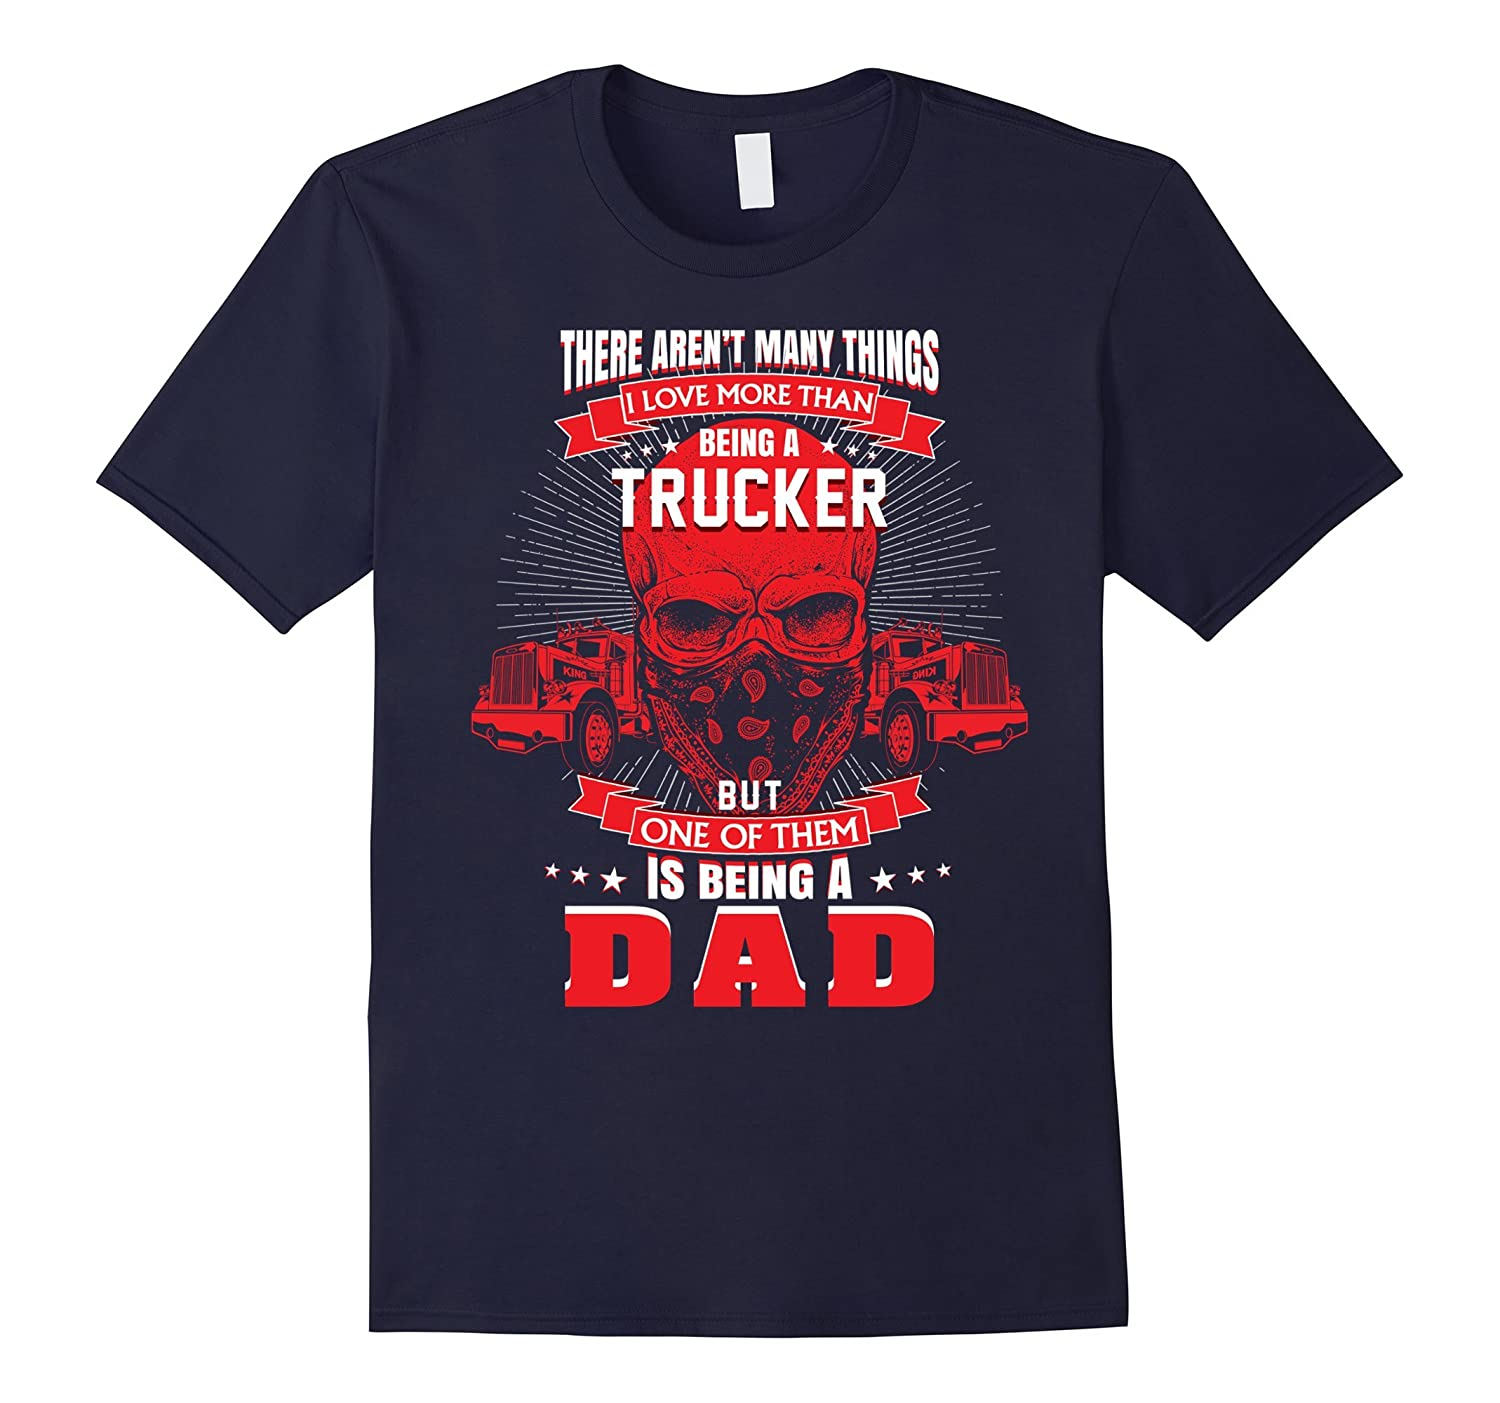 A Trucker Being a Dad T Shirt - Funny Truck Driver T Shirt-CD